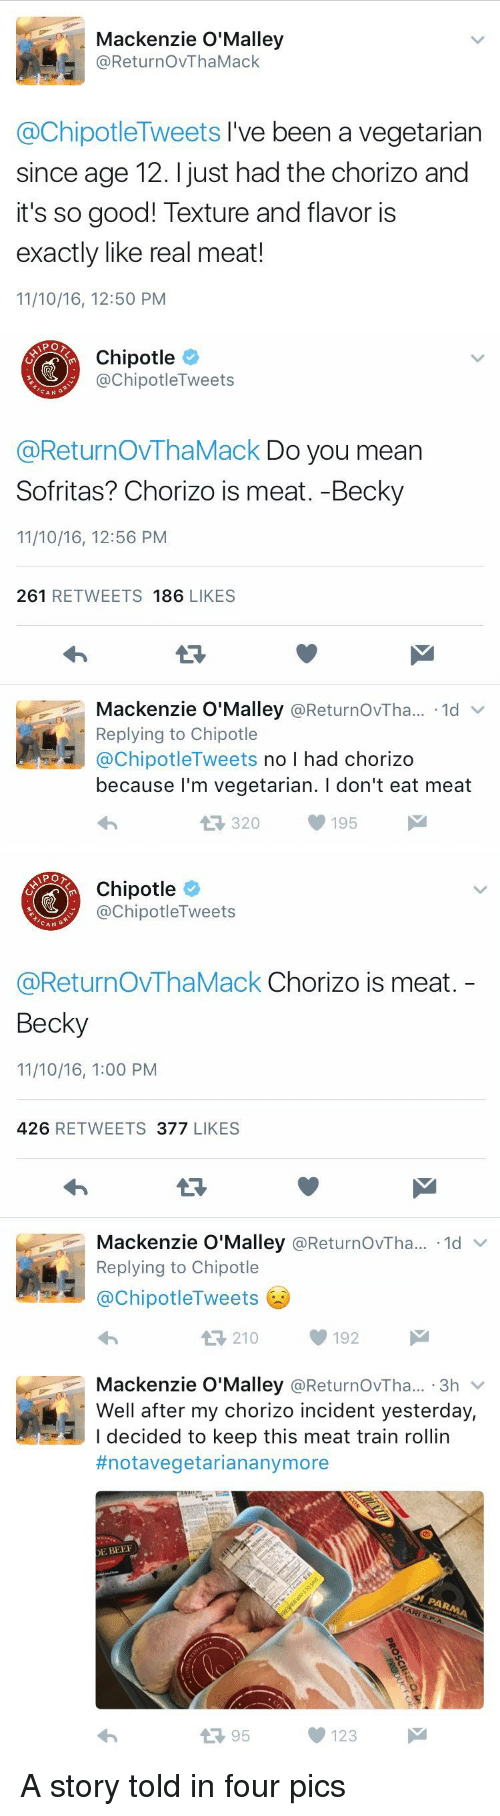 Beef, Beef, and Chipotle: Mackenzie O'Malley  @ReturnovThaMack  @Chipotle Tweets I've been a vegetarian  since age 12. just had the chorizo and  it's so good! Texture and flavor is  exactly like real meat!  11/10/16, 12:50 PM   Chipotle  Tweets  nipotle CAN  @ReturnovThaMack Do you mean  Sofritas? Chorizo is meat. -Becky  11/10/16, 12:56 PM  261  RETWEETS 186  LIKES  Mackenzie O'Malley  @ReturnovTha... 1d  v  Replying to Chipotle  @Chipotle Tweets  no I had chorizo  because I'm vegetarian. l don't eat meat  195  M  320   Chipotle  ChipotleTweets  CAN  G  @ReturnovThaMack Chorizo is meat  Becky  11/10/16, 1:00 PM  426  RETWEETS  377  LIKES  Mackenzie O'Malley  ReturnovTha... 1d  Replying to Chipotle  @Chipotle Tweets  210  192   Mackenzie O'Malley  ReturnovTha... 3h  V  Well after my chorizo incident yesterday,  I decided to keep this meat train rollin  #notavegetarian anymore  DE BEEF  95  123 A story told in four pics